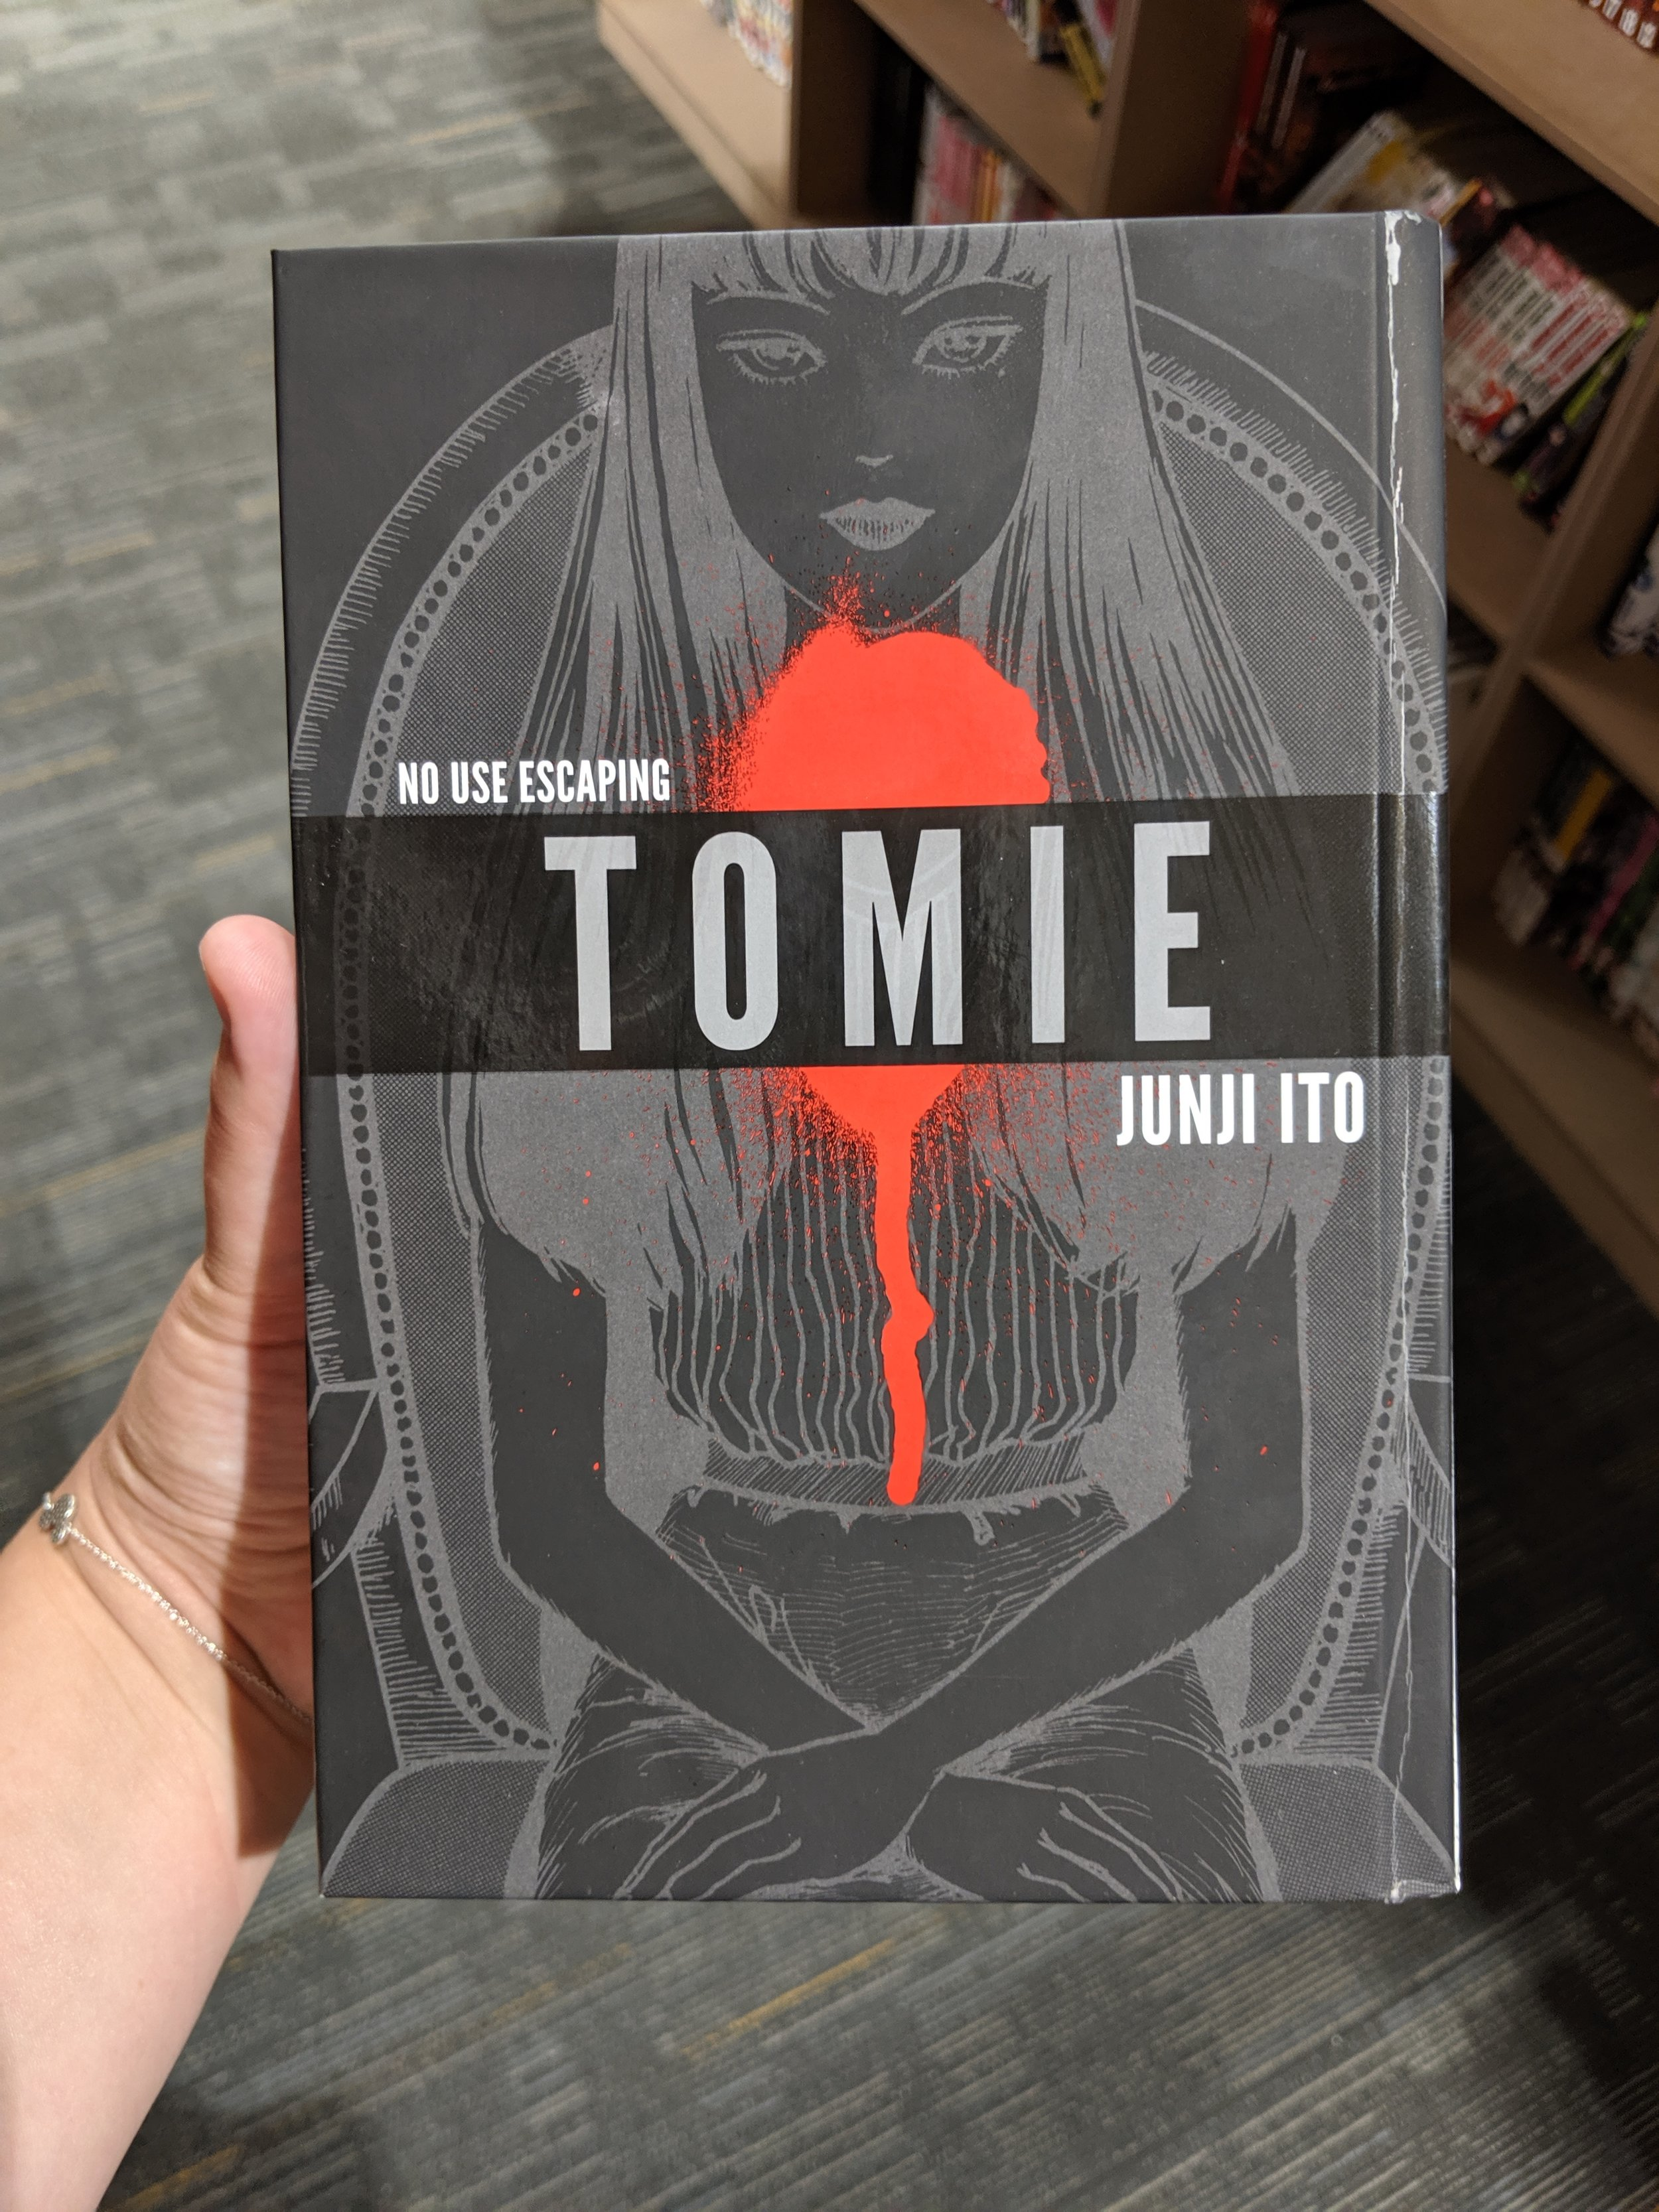 Tomie Complete Deluxe Edition by Junji Ito at 2nd and Charles in Fort Collins, Colorado.